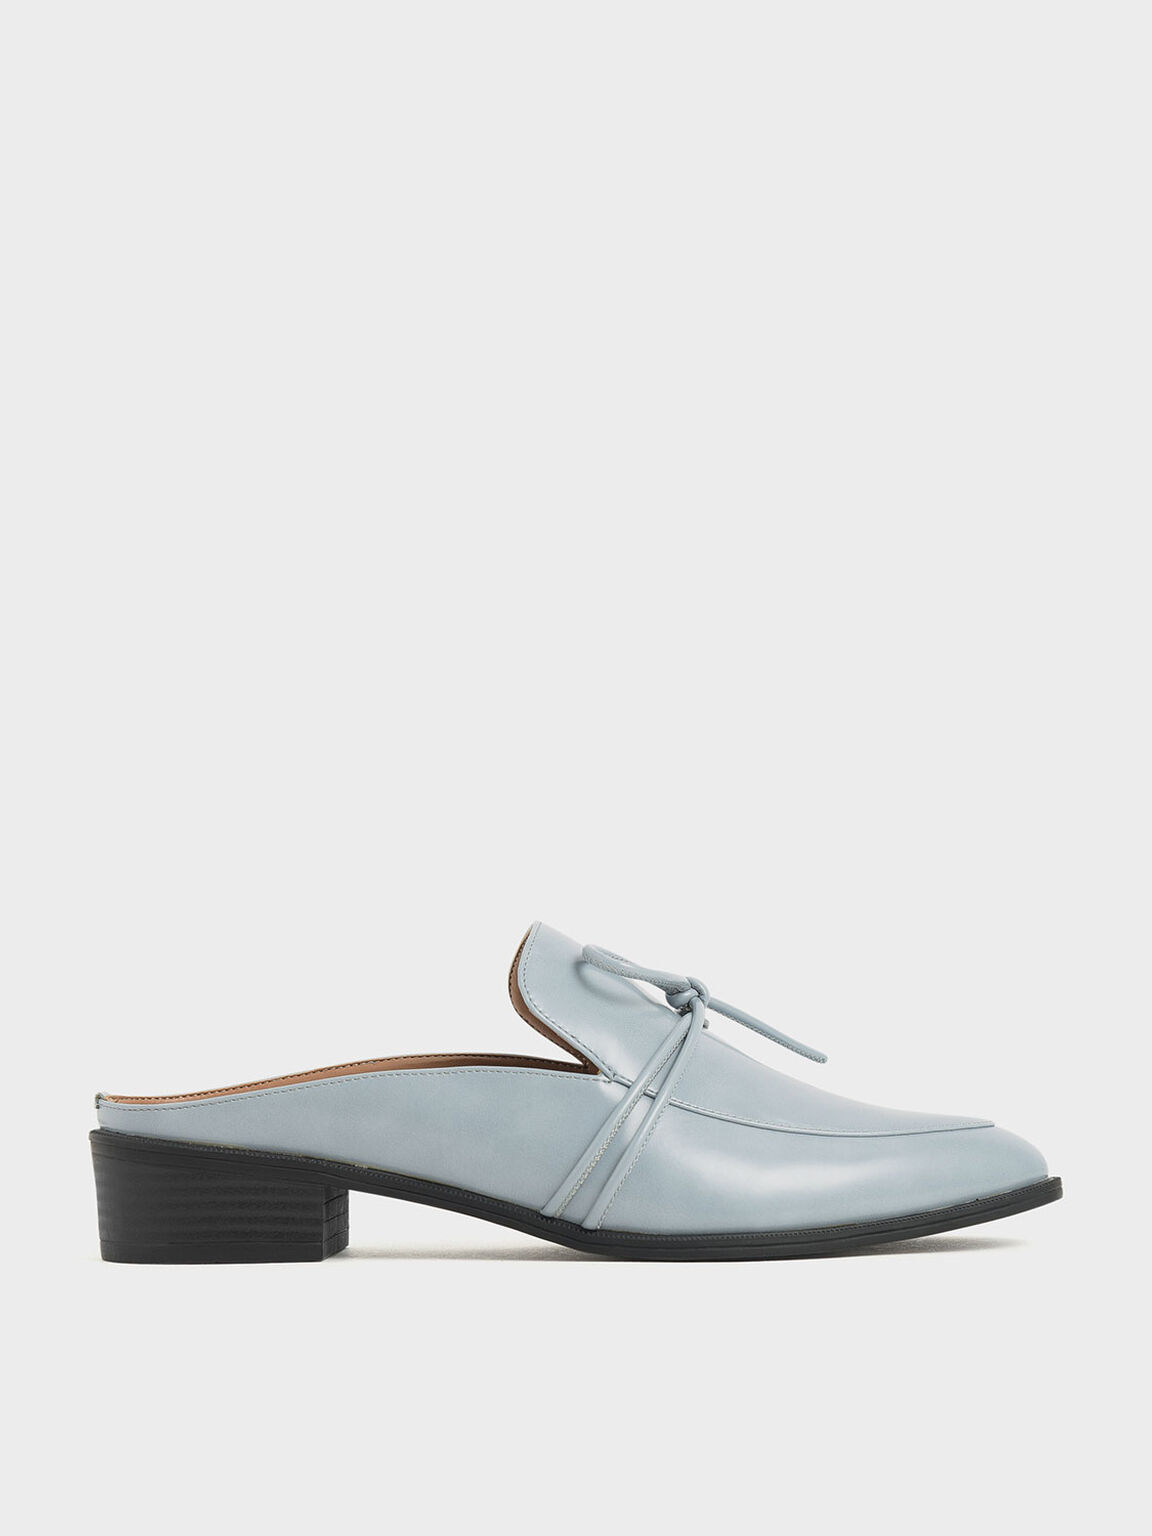 Almond Toe Knot Mules, Light Blue, hi-res